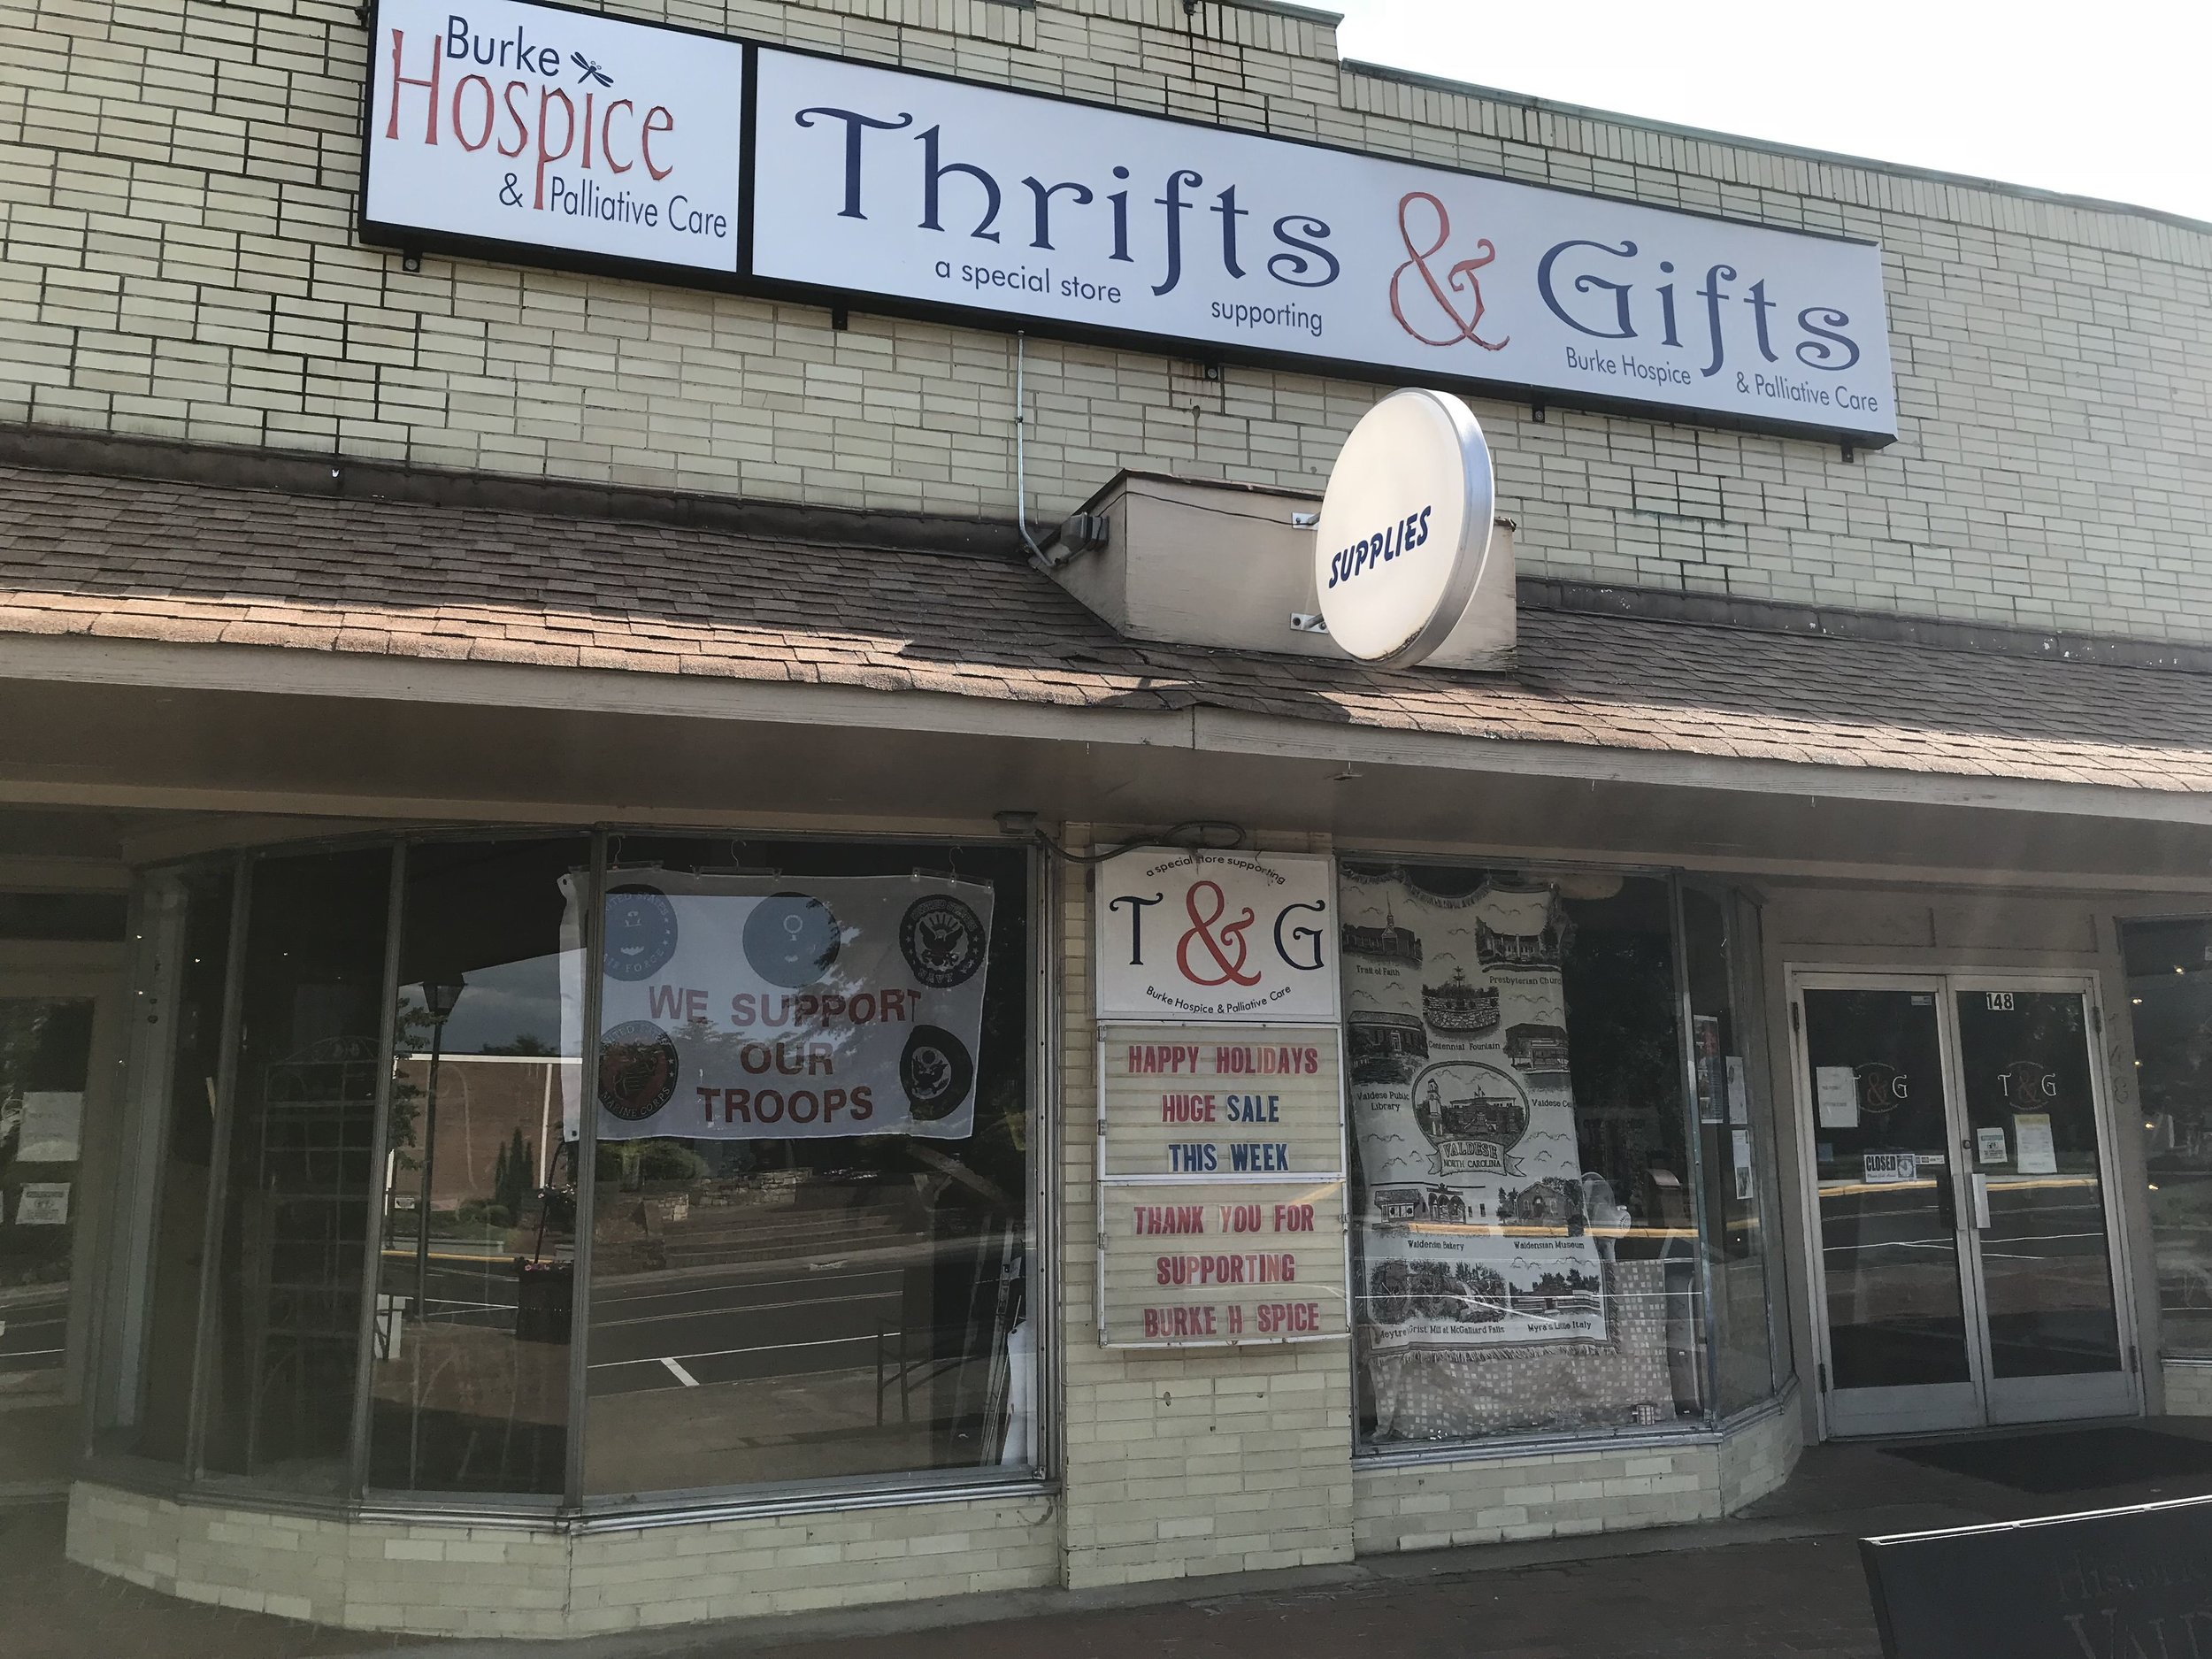 Burke Hospice Thrifts & Gifts - (828) 874-4483148 Main Street East, Valdese, NC 28690